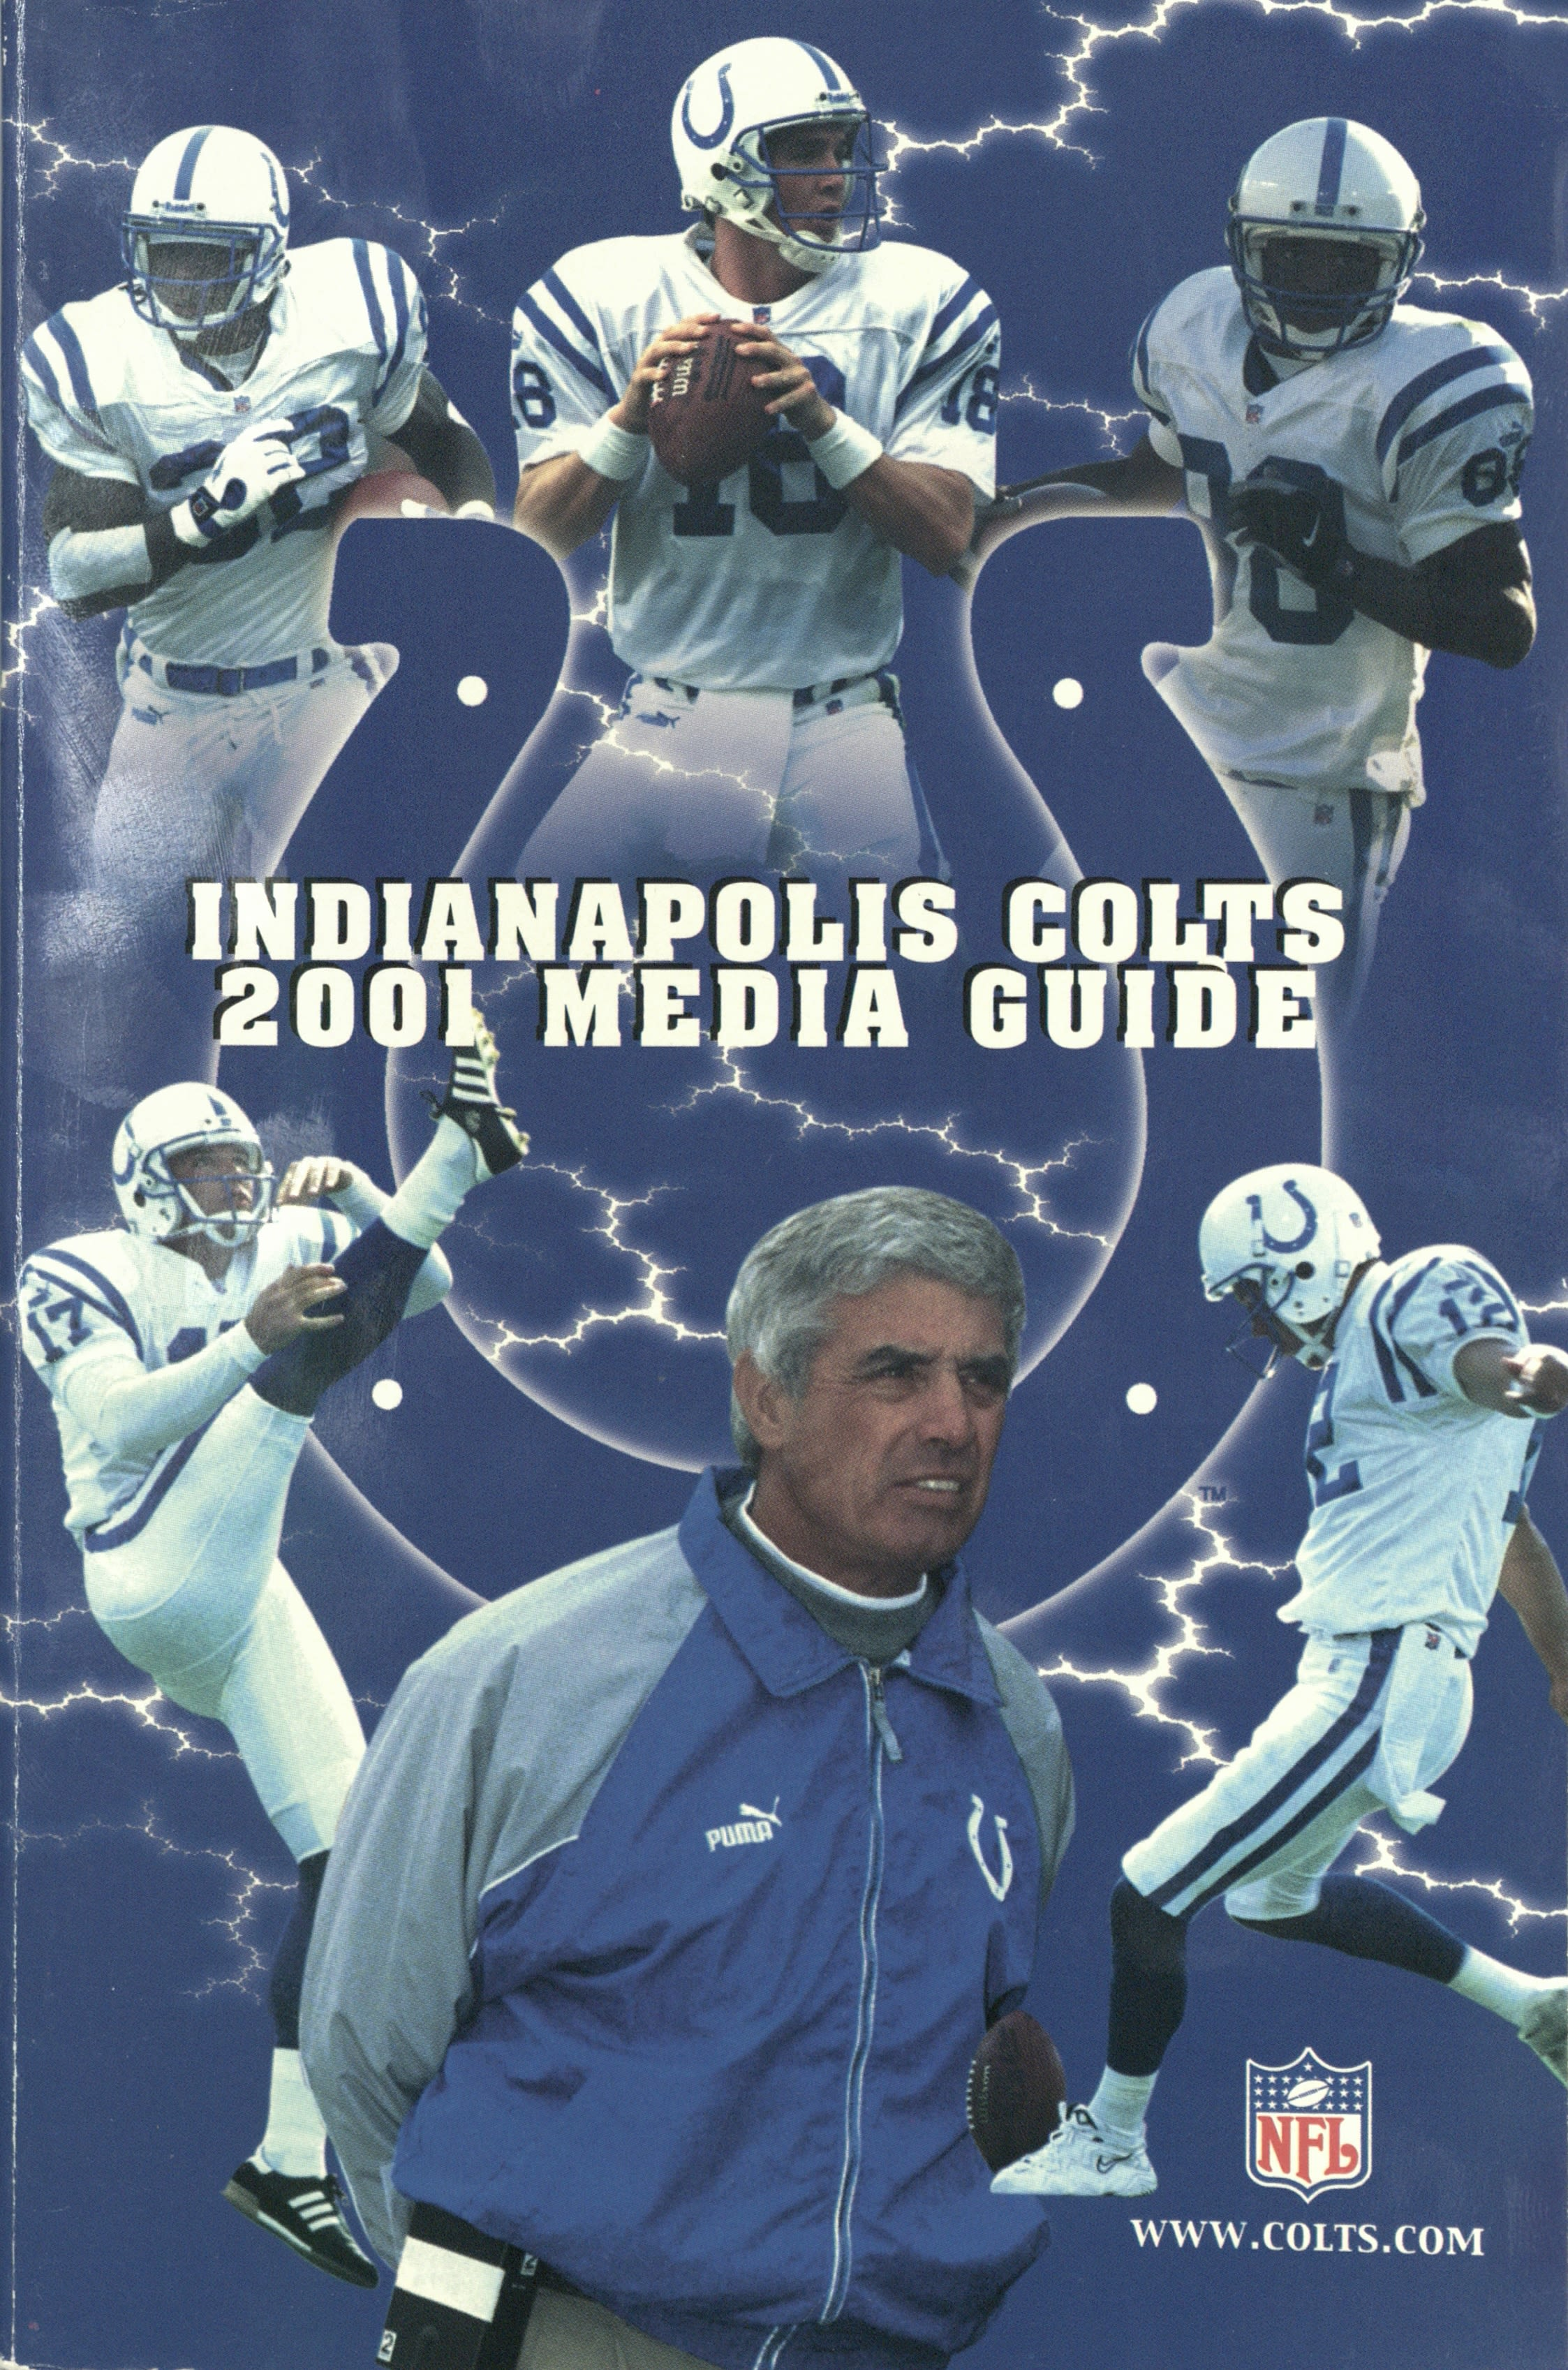 COLTS_2001_Cover